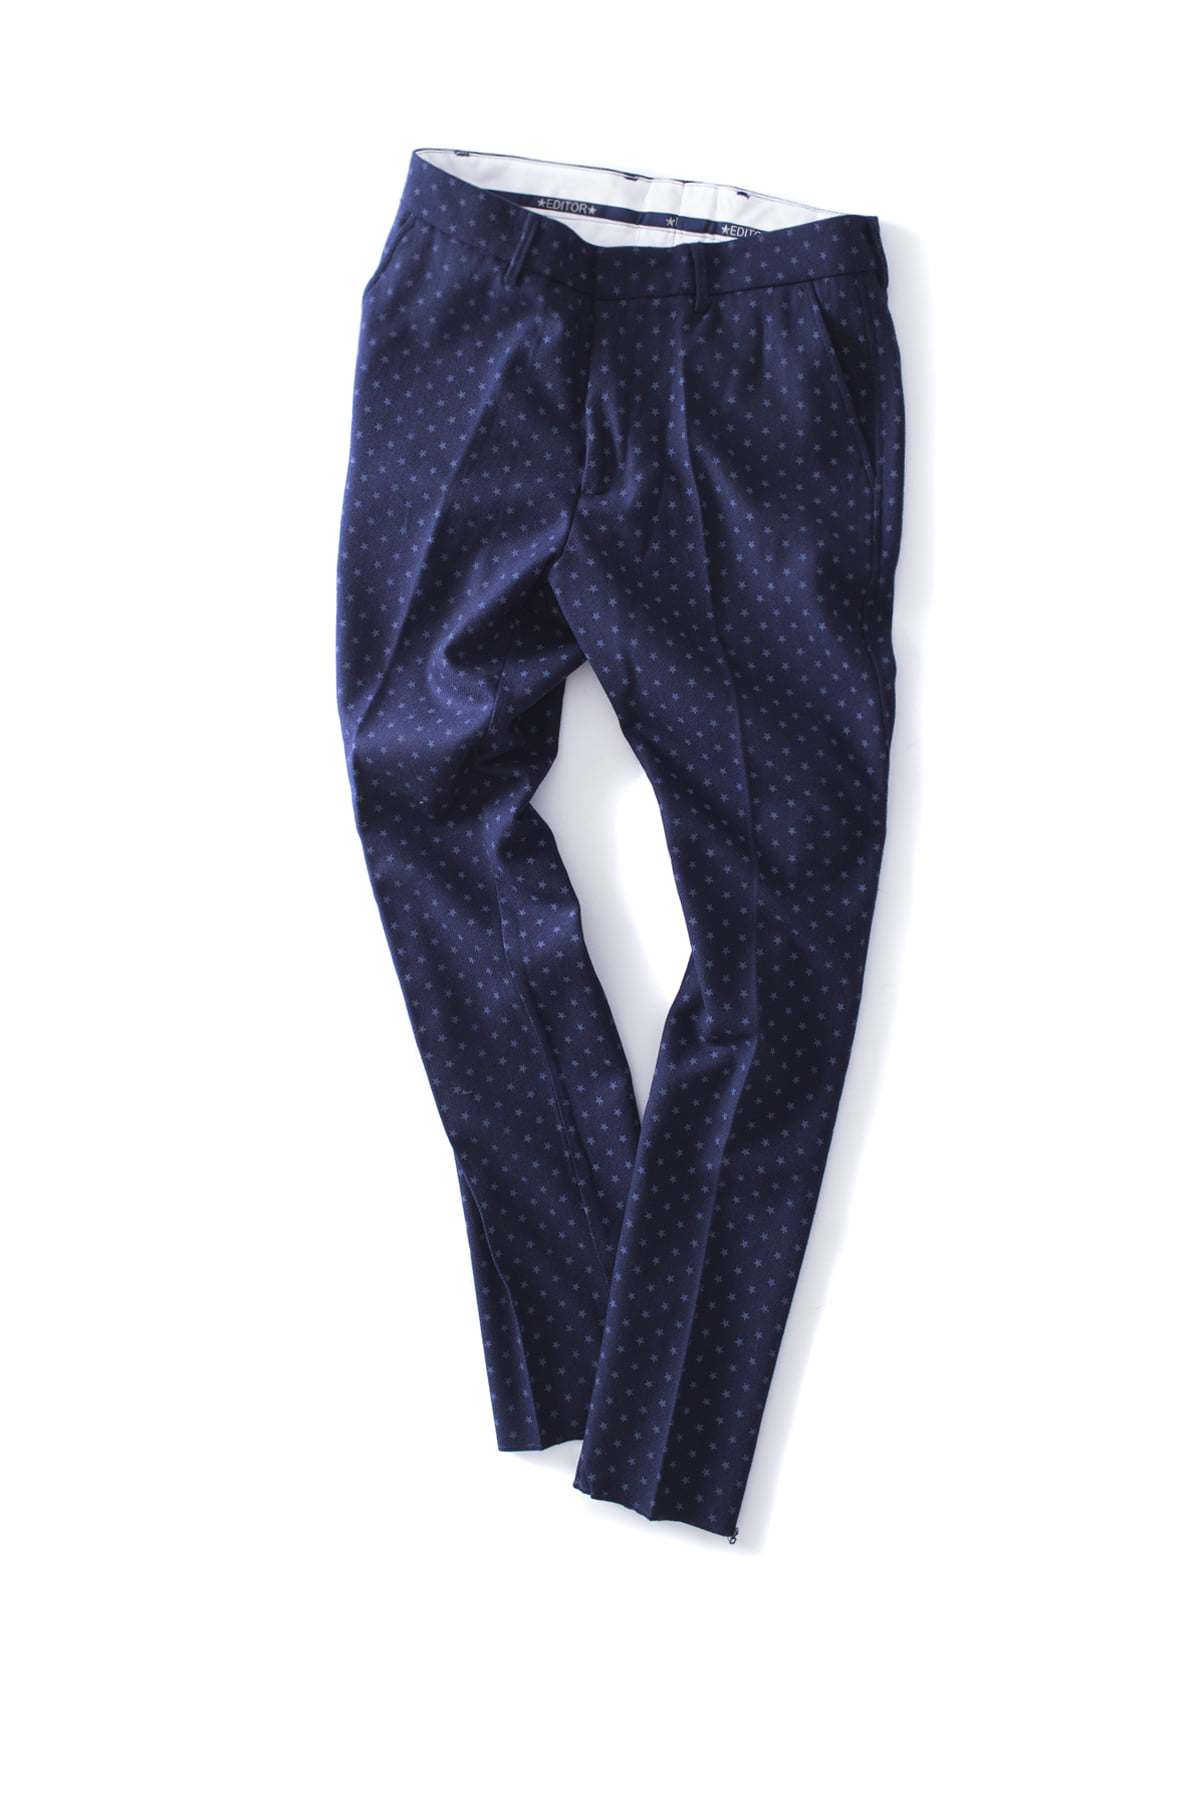 THE EDITOR : Star Trouser (Navy)